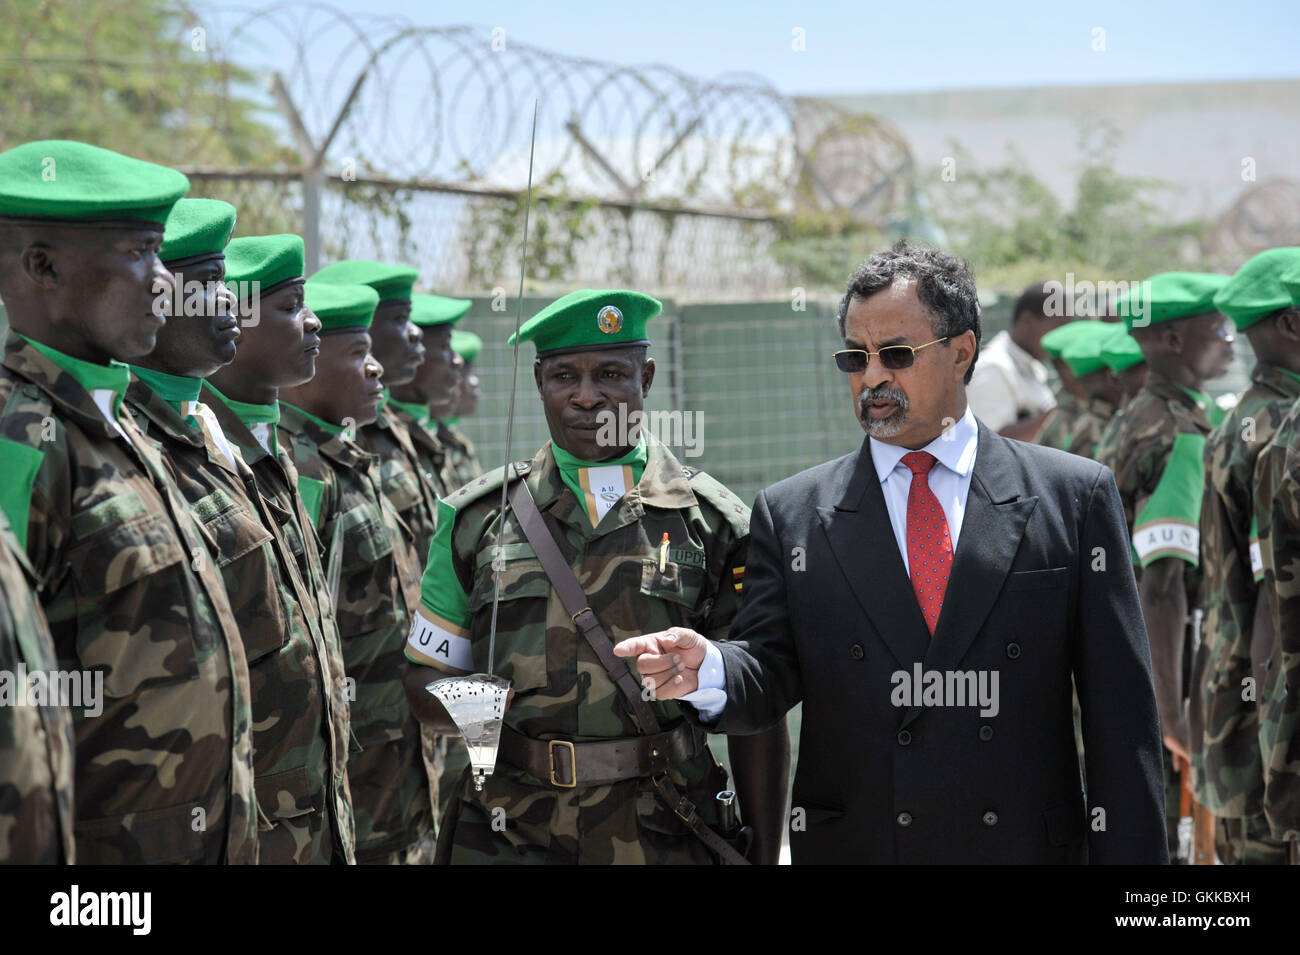 SRCC Mahamet Saleh Anadif inspects the guard of honor before the handover ceremony for the new Force Commander of - Stock Image